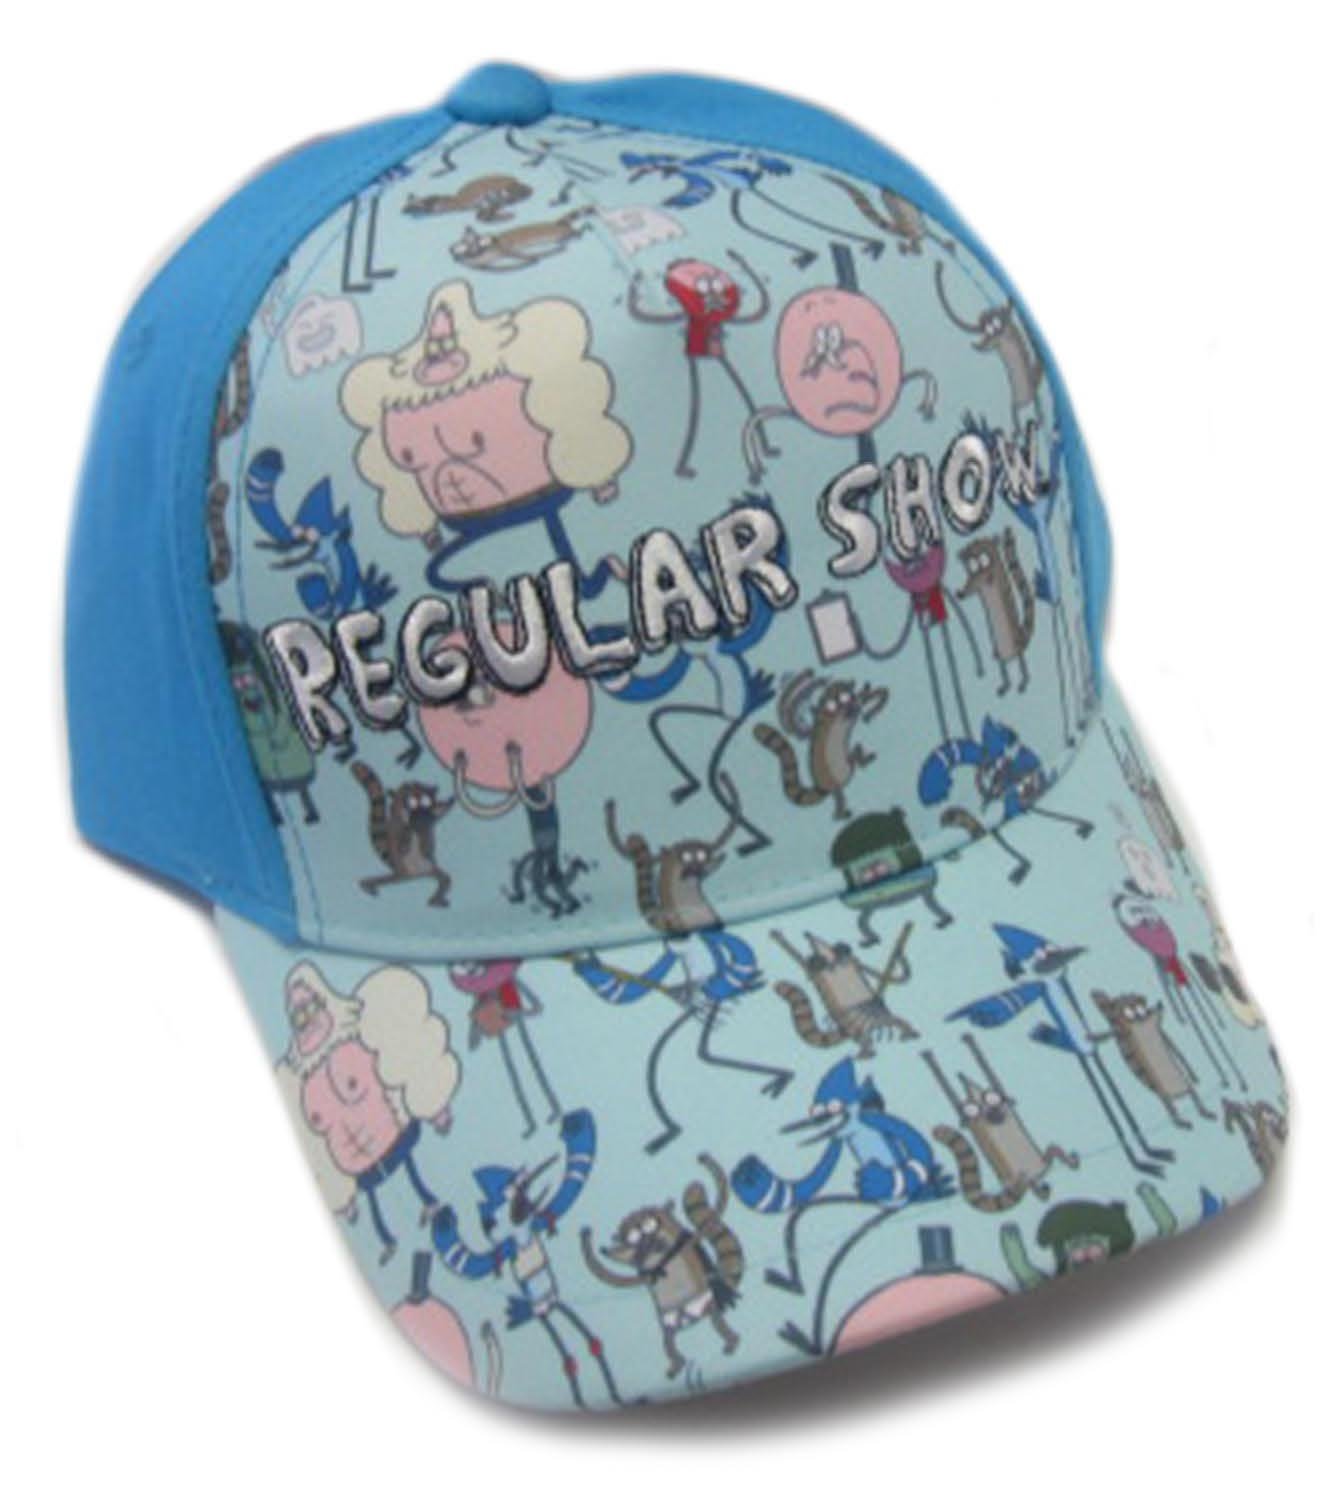 Regular Show Hat Characters (KIDS)